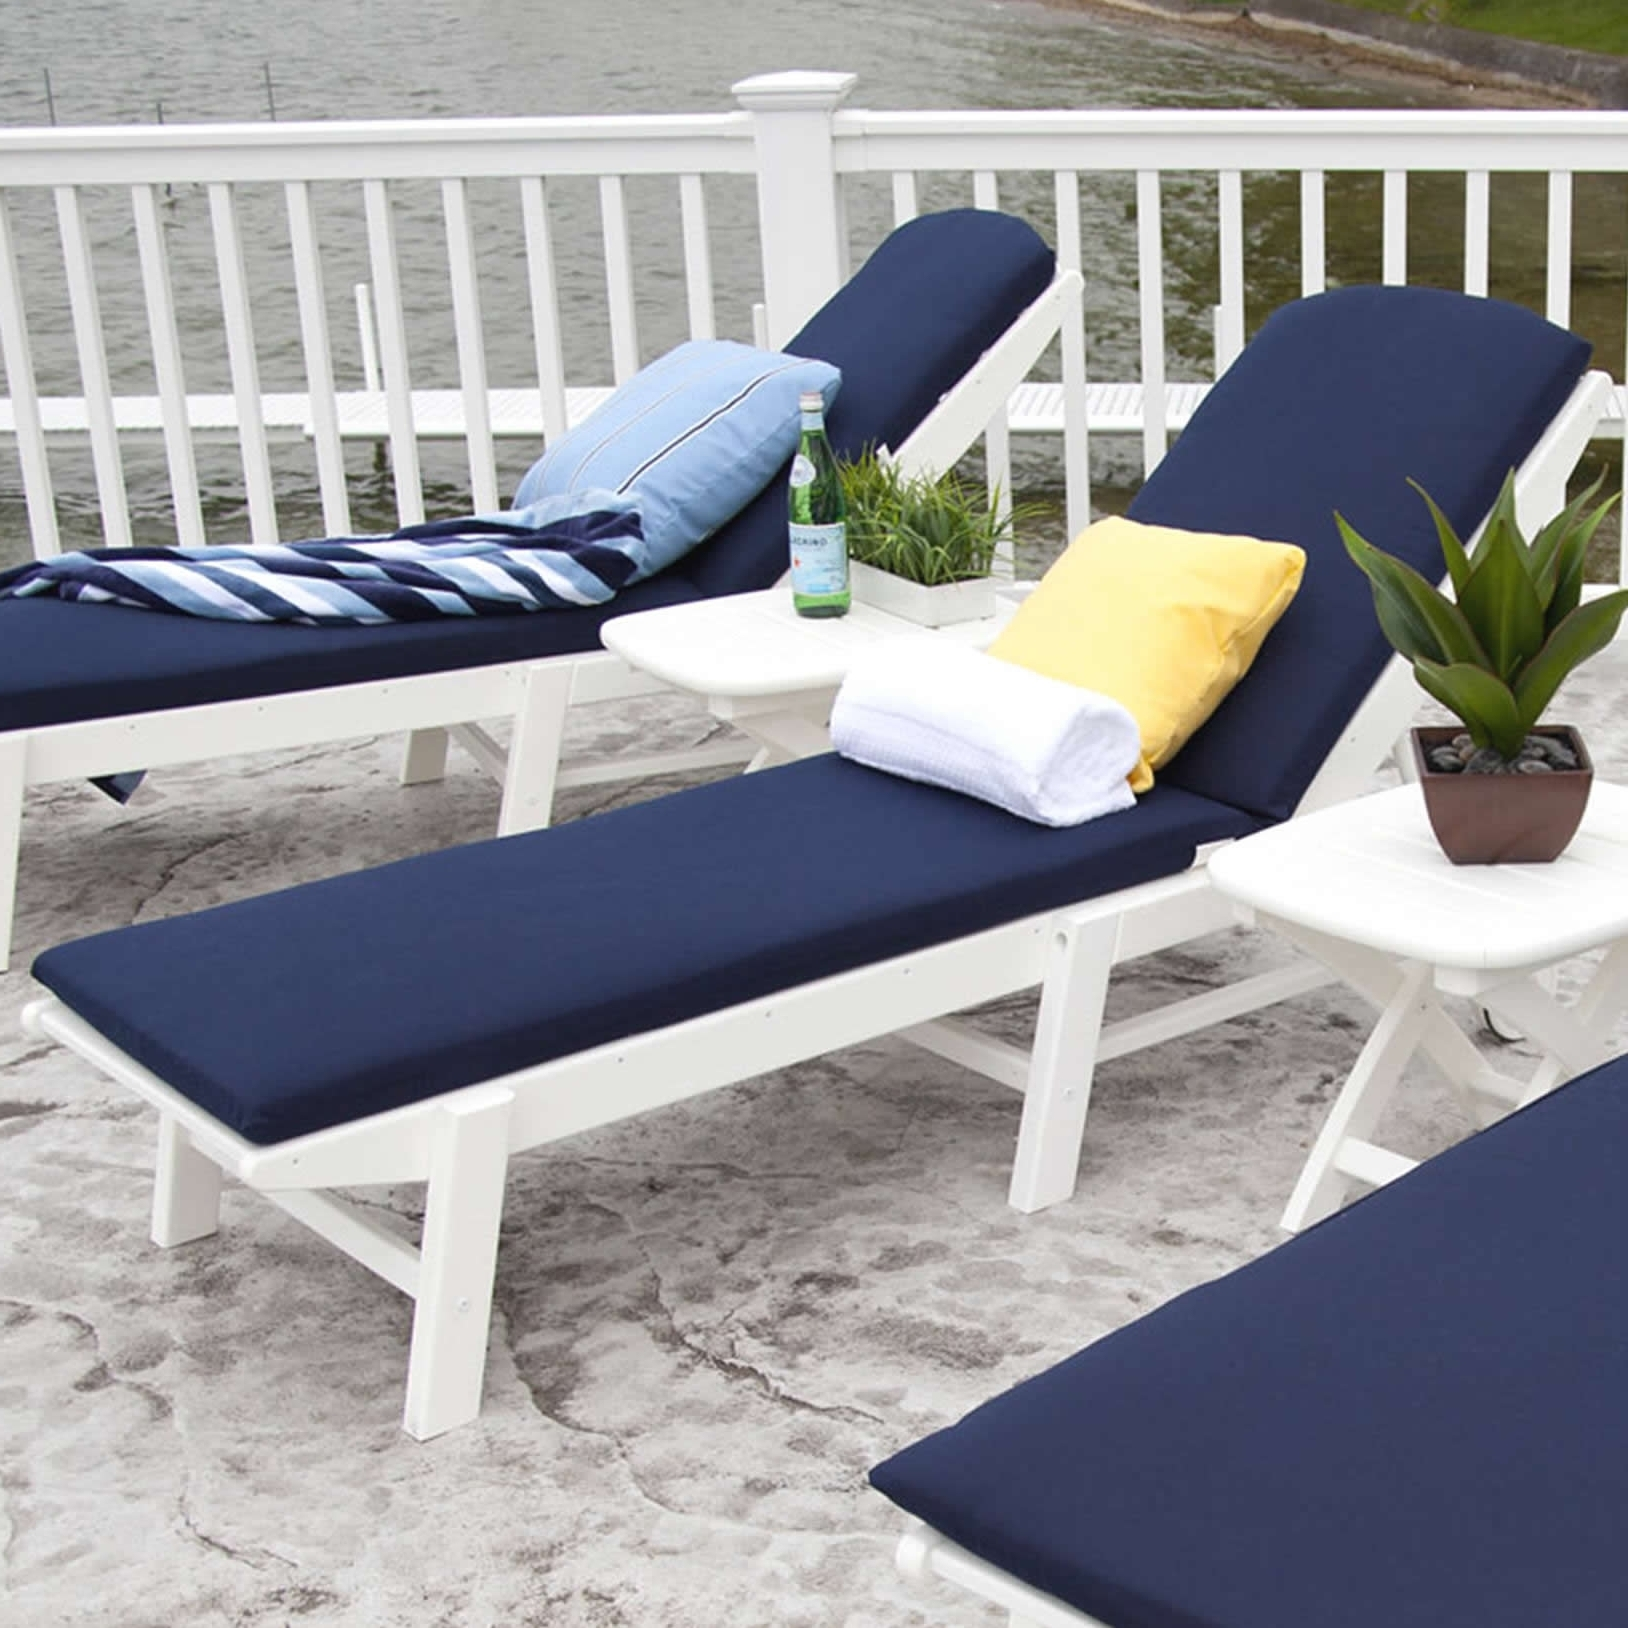 Polywood Nautical Chaise Lounge Cushions Regarding Well Known Outdoor Chaise Cushions (View 14 of 15)